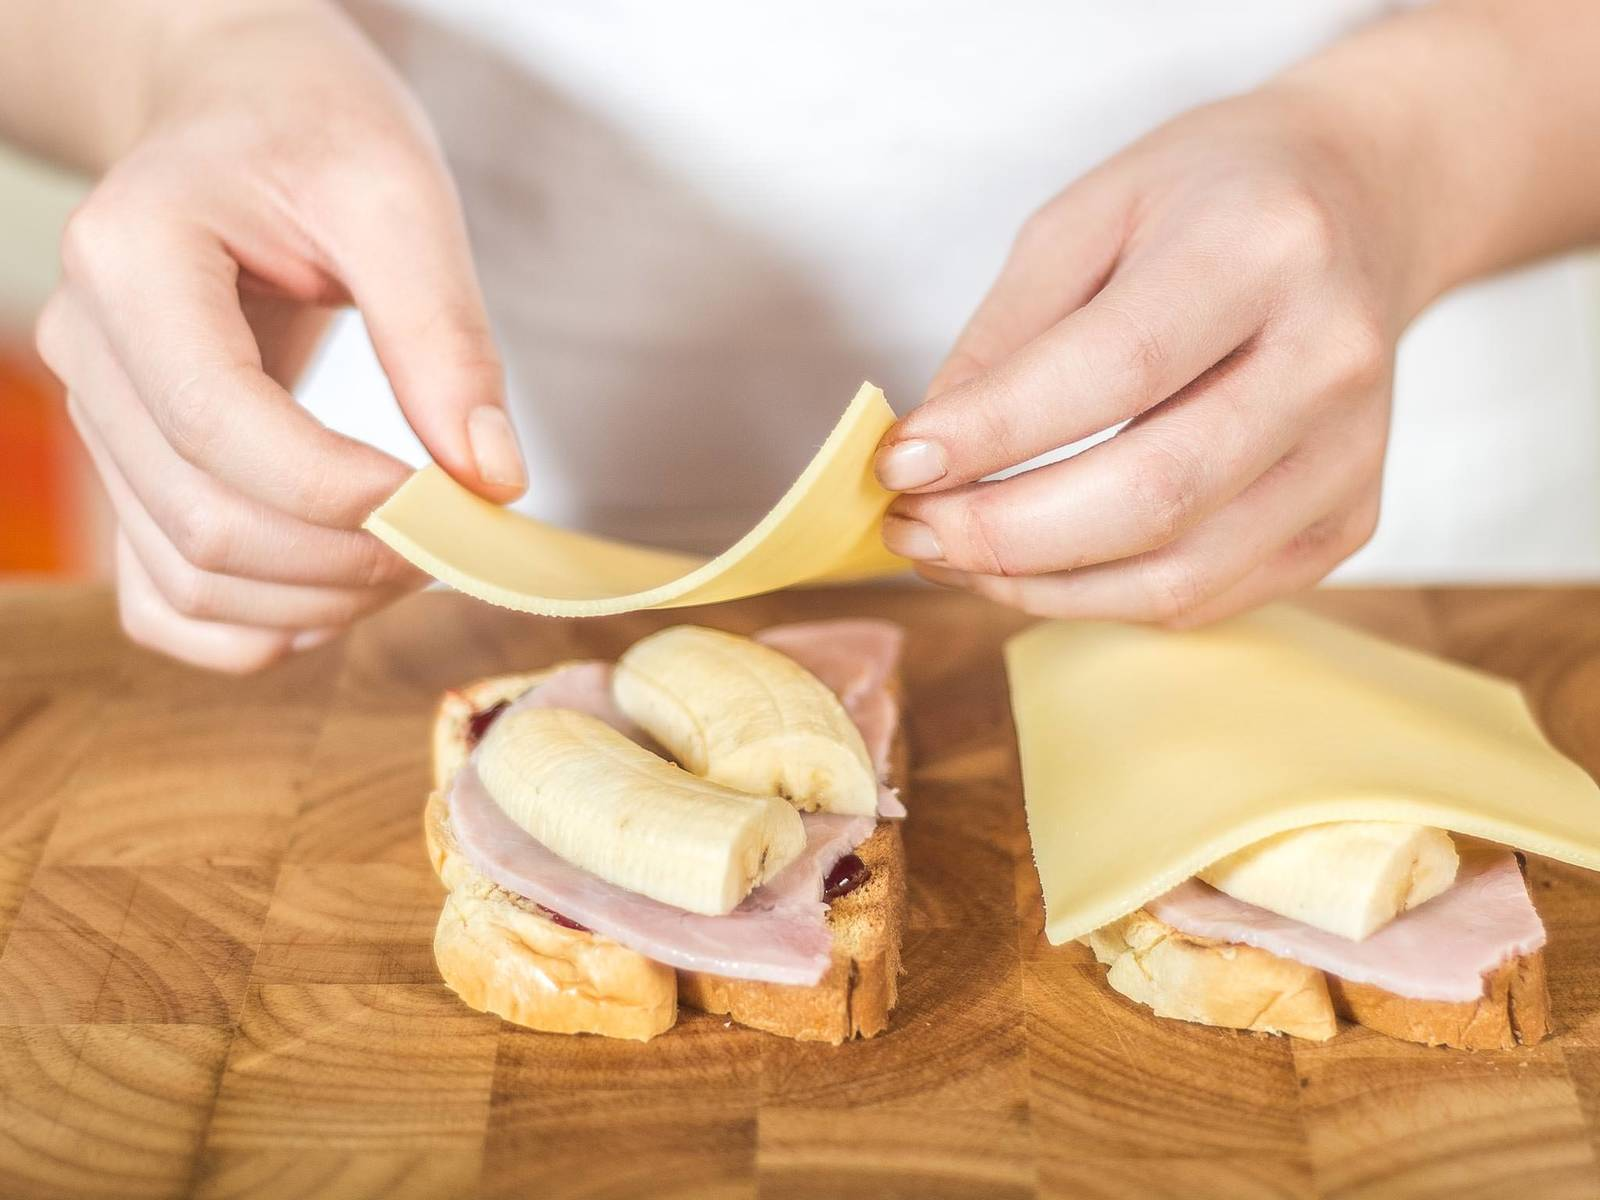 Next, place a slice of ham, banana, and then cheese on the brioche.